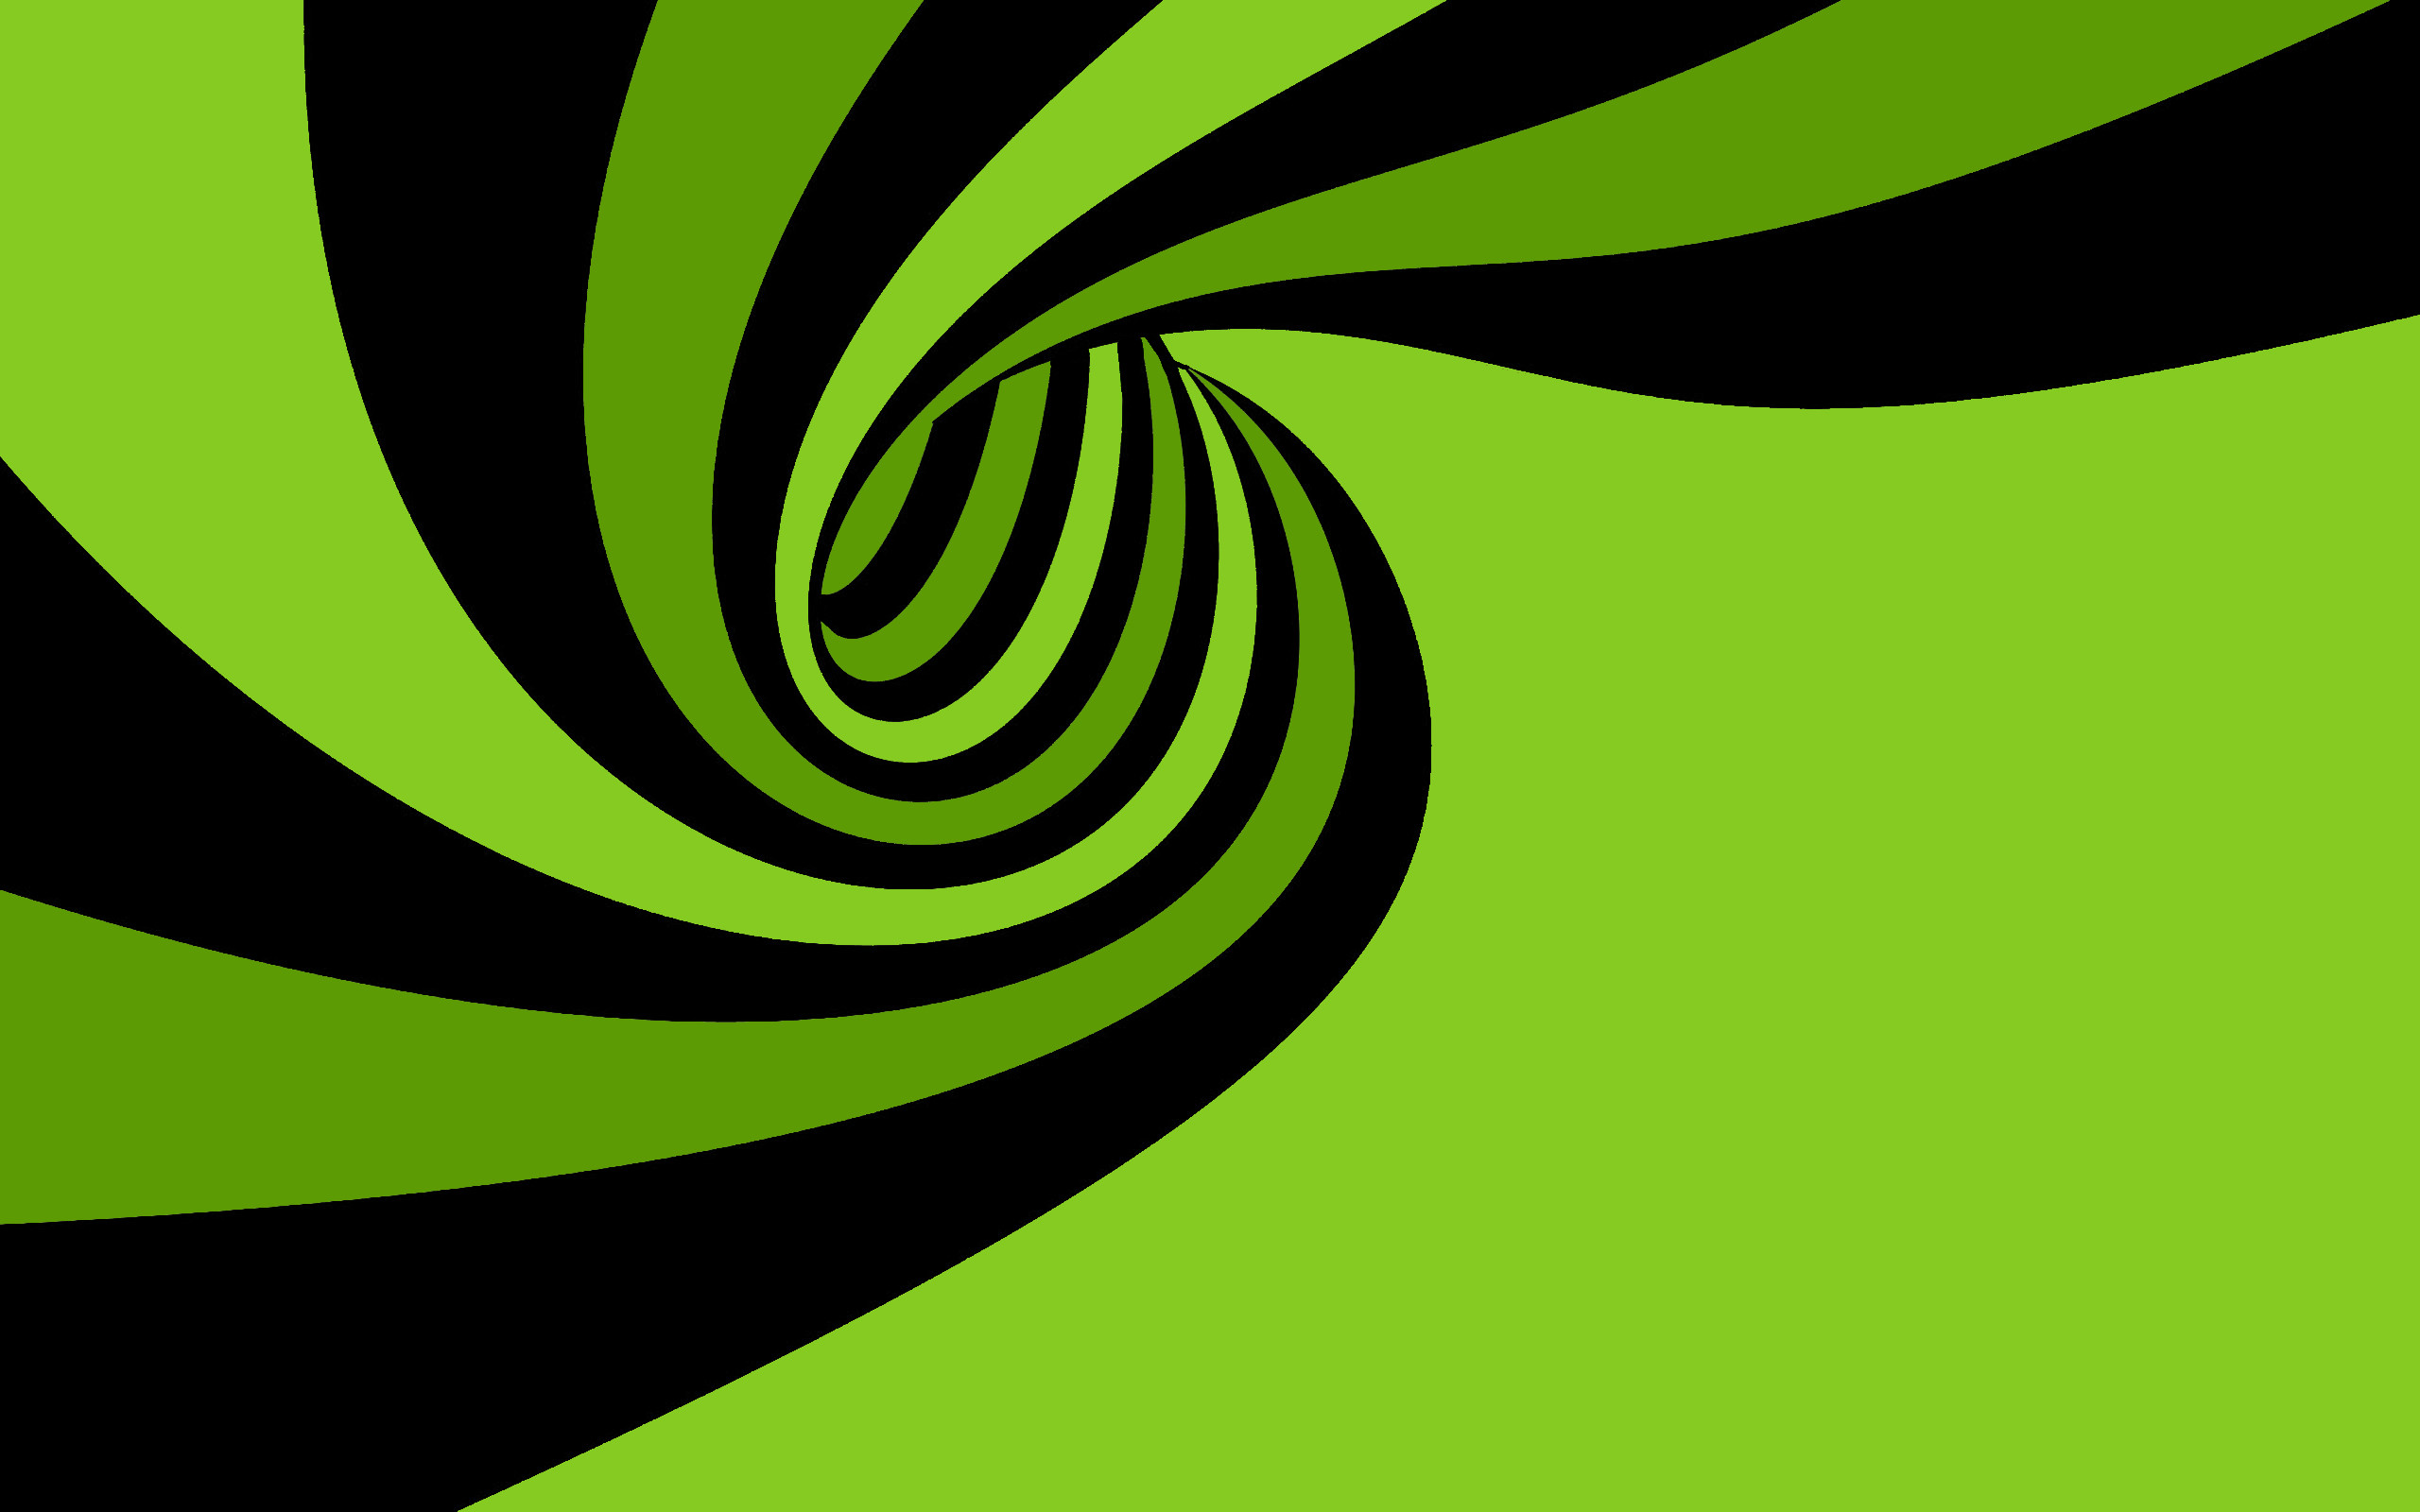 2560x1600 Green images Green Spiral Wallpaper HD wallpaper and background photos